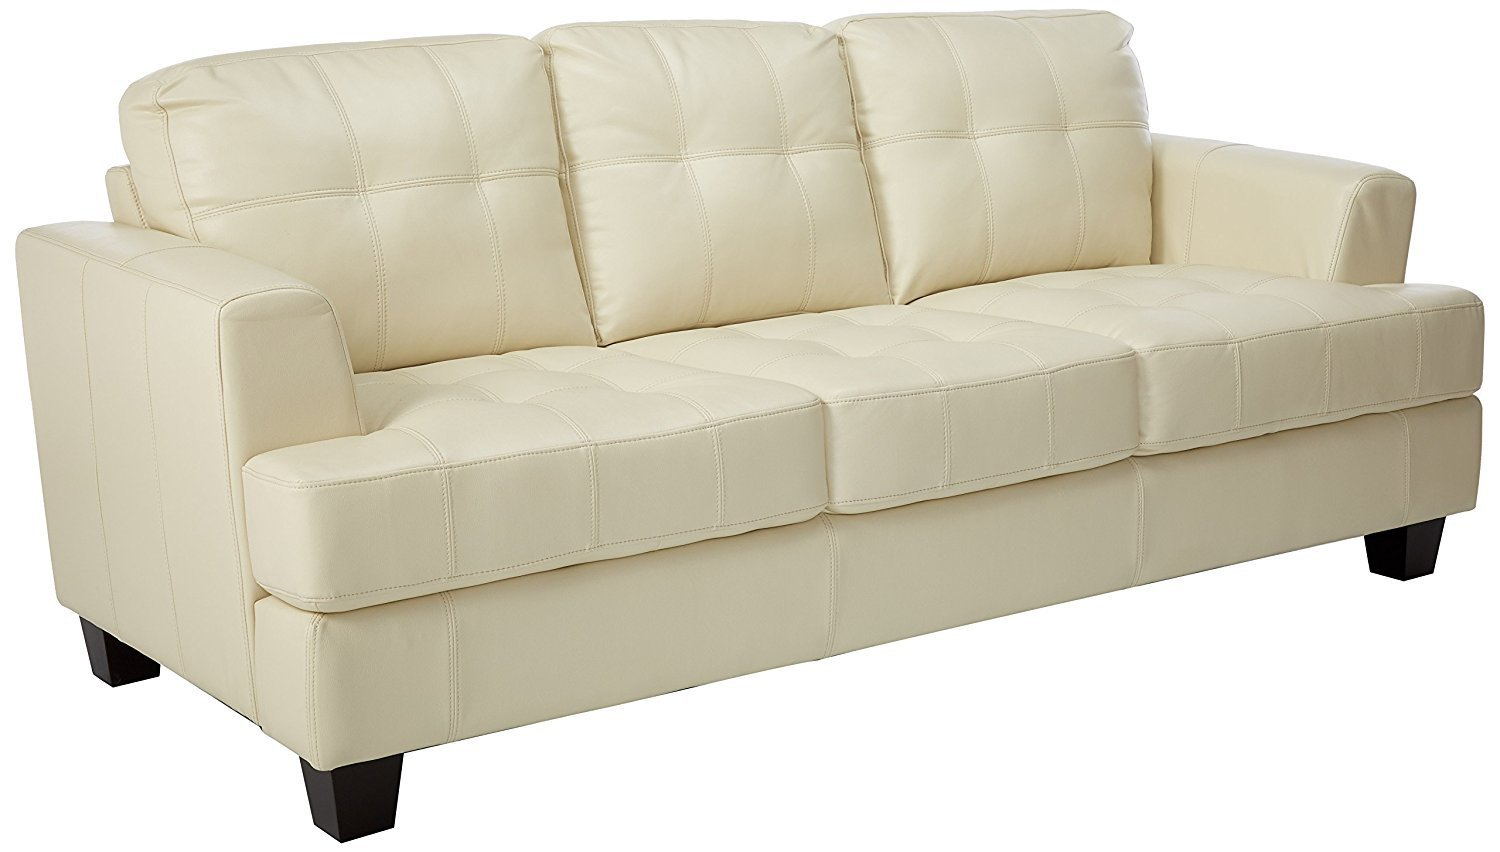 Coaster Samuel Collection Cream Leather Sofa Home